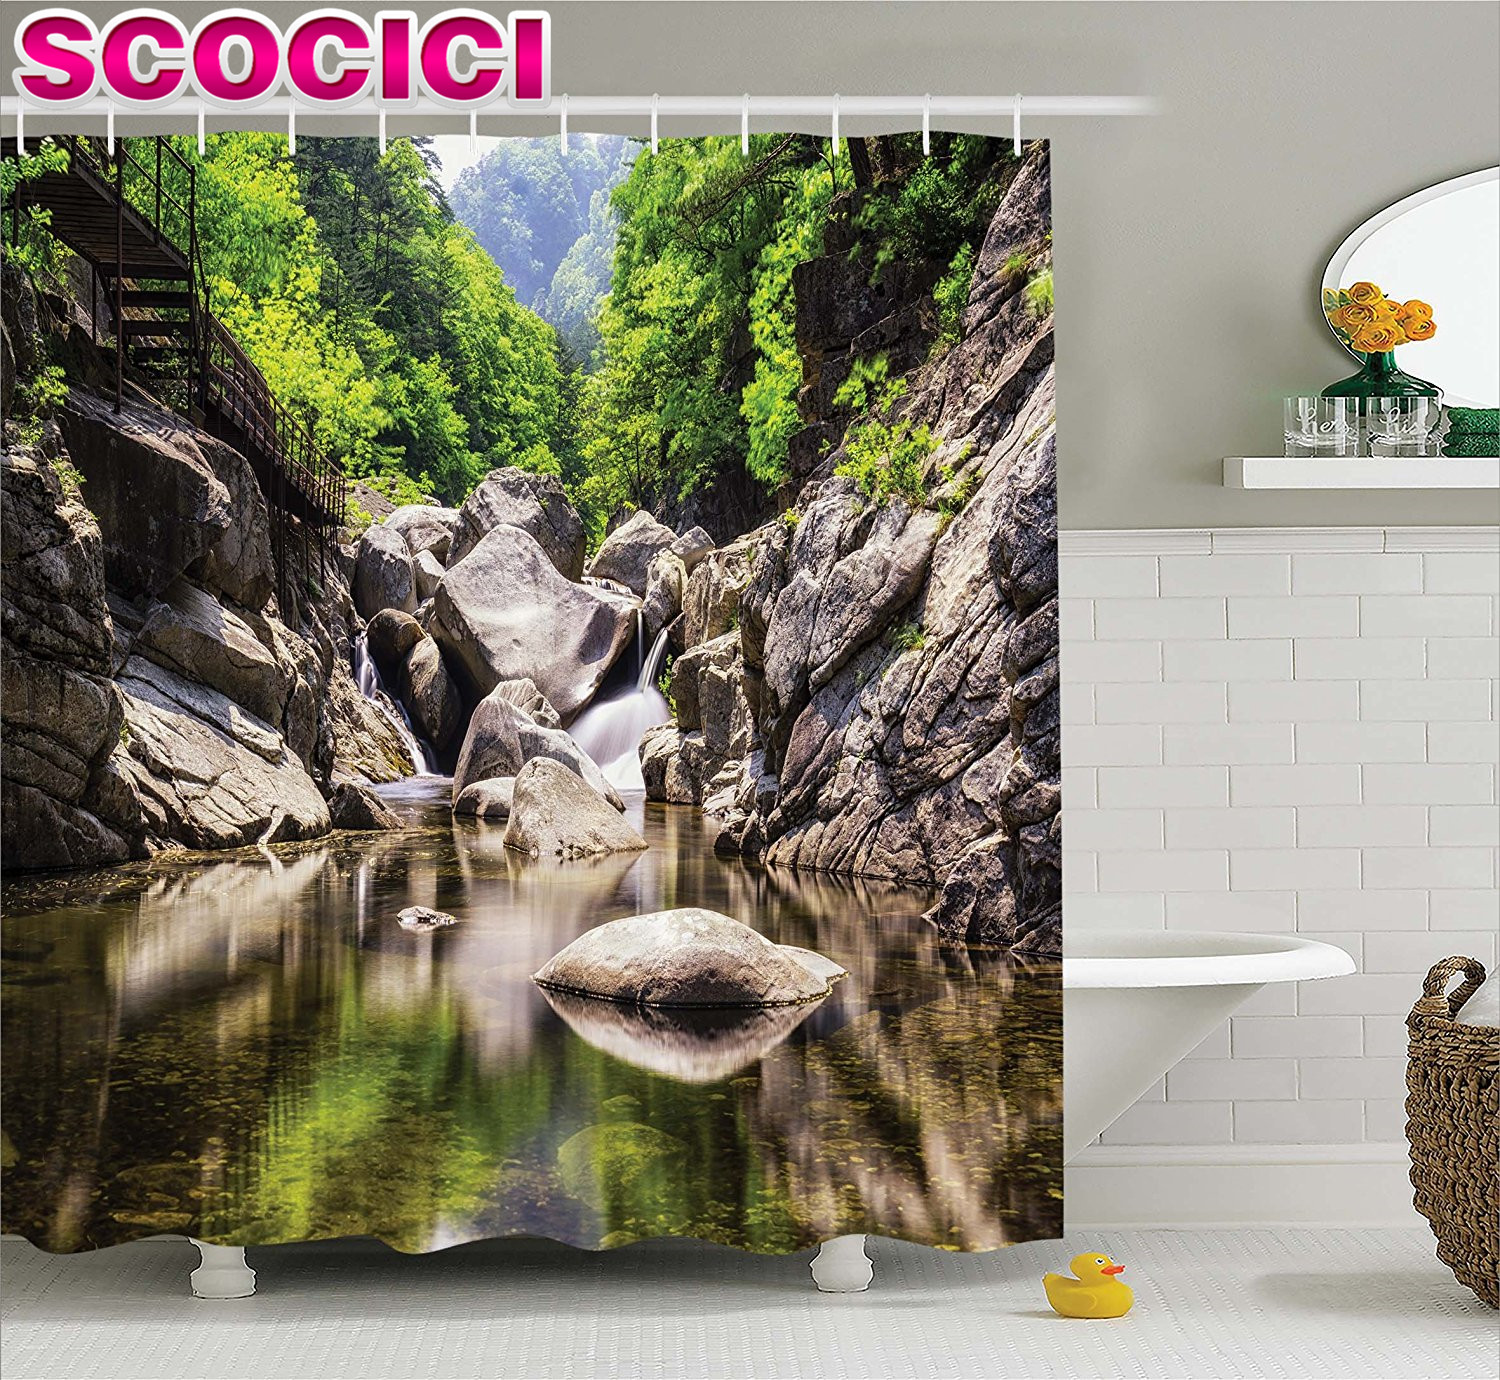 Rainforest shower curtain - National Parks Home Decor Shower Curtain Rainforest Waterfall Scenery With Rocks In The River Nature Print